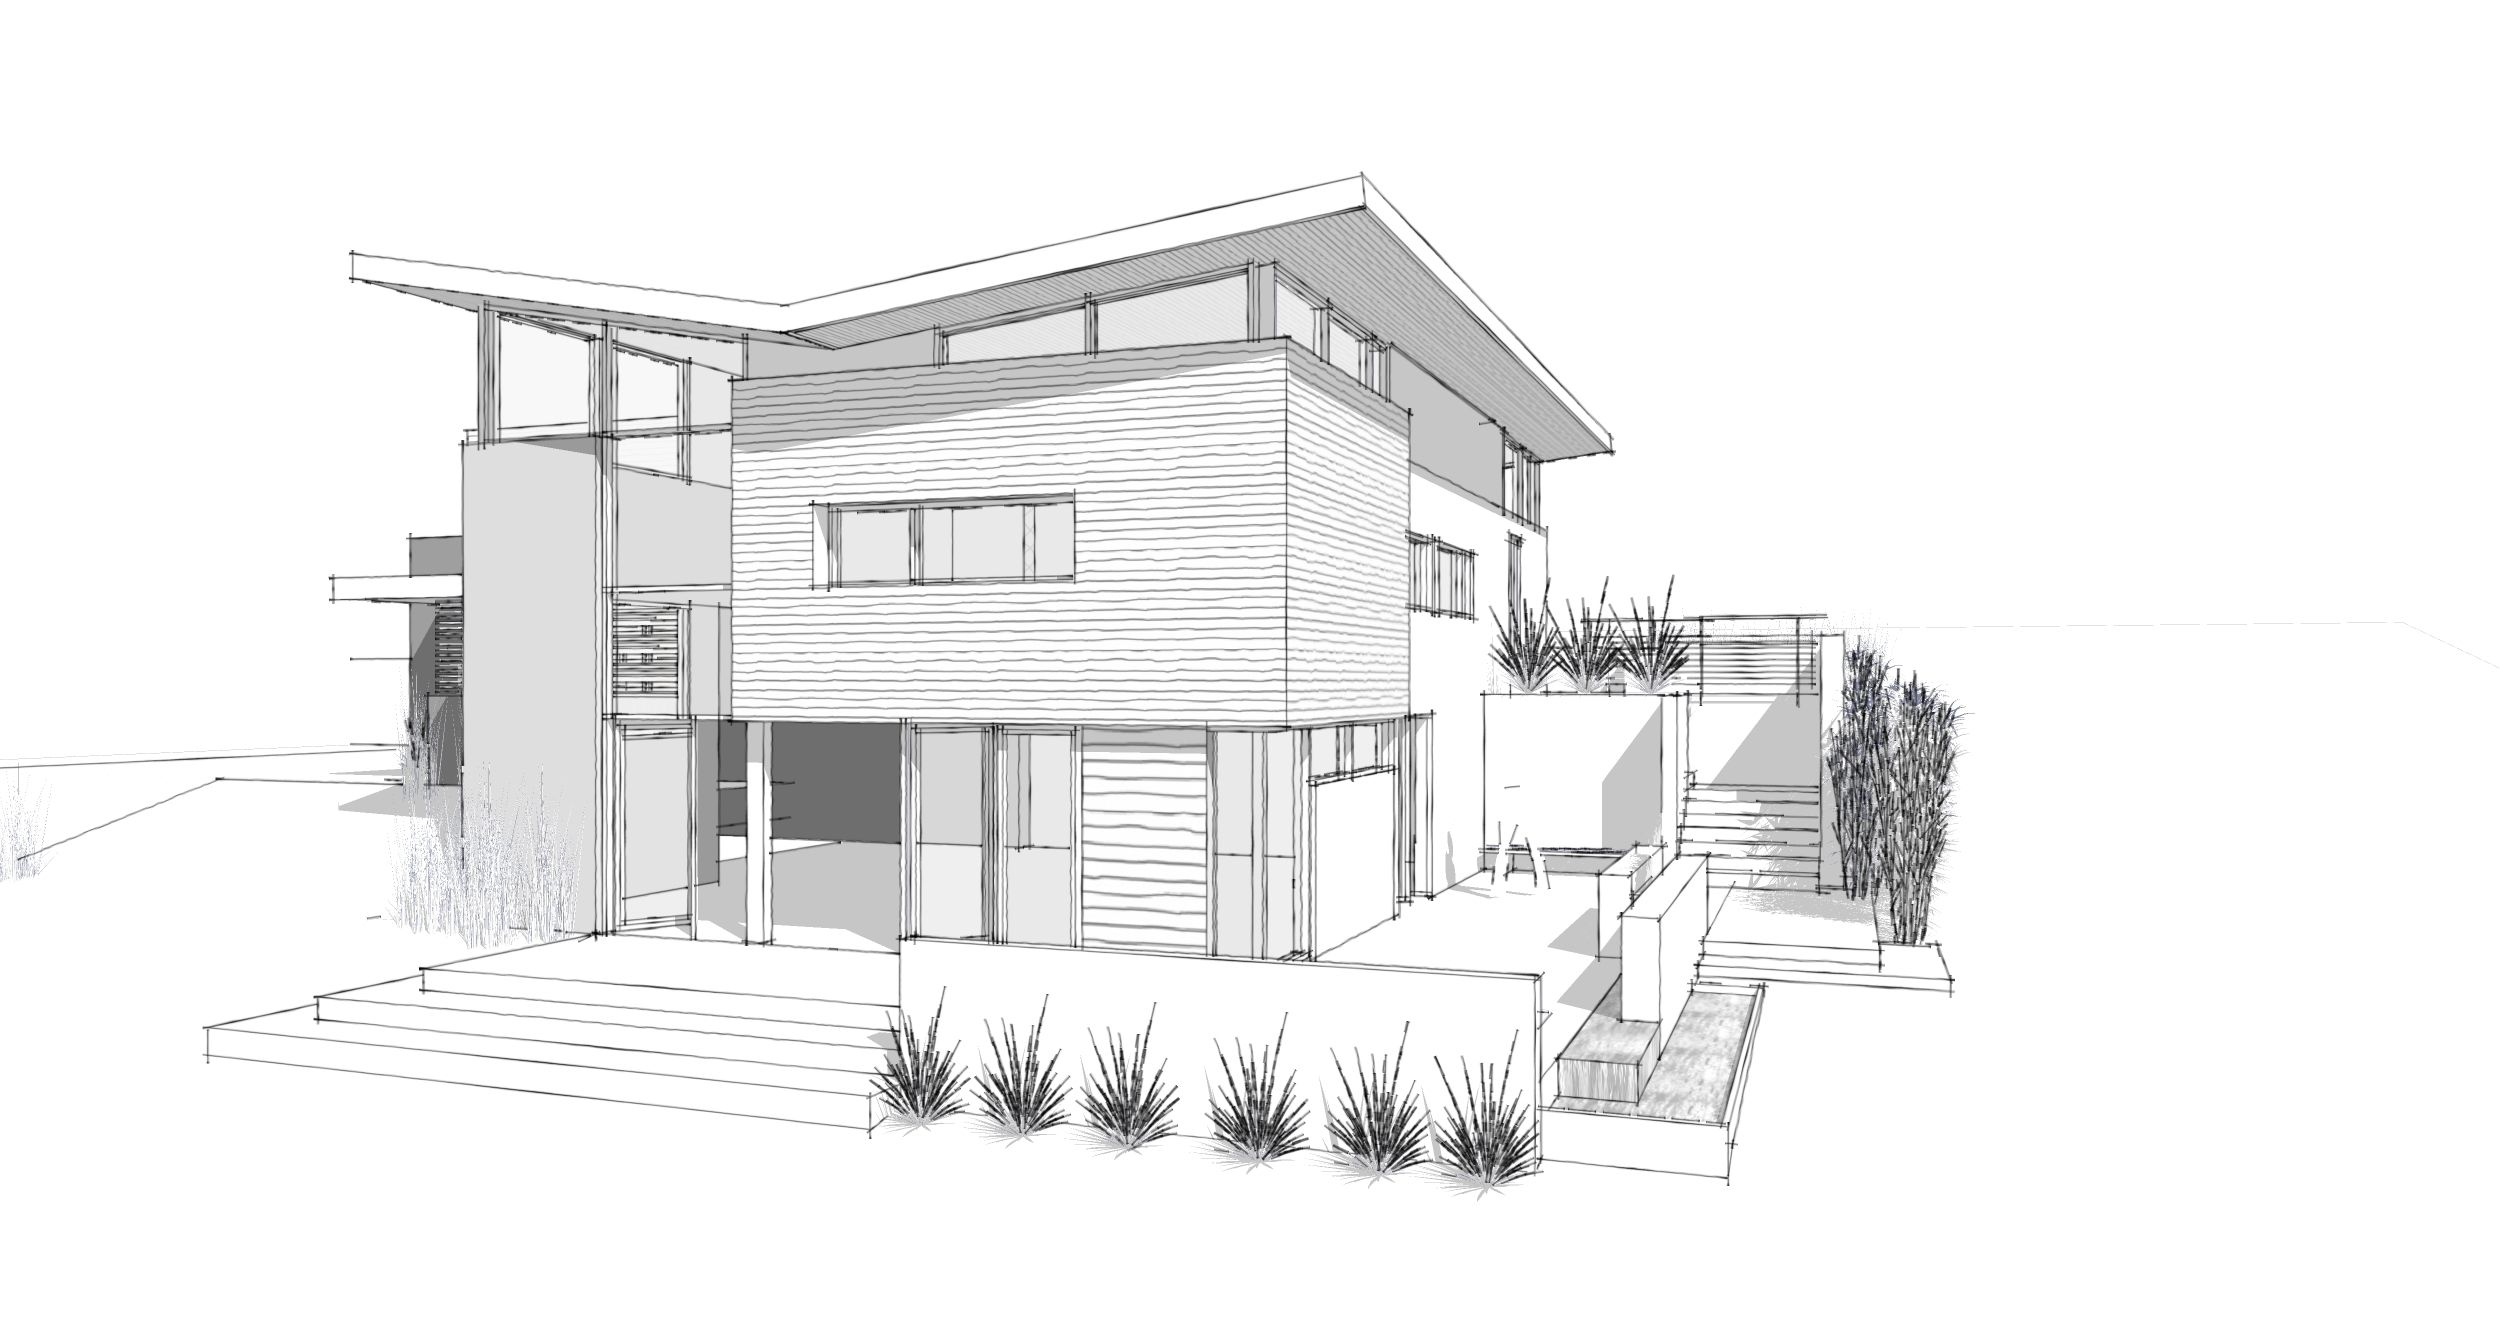 architecture house sketch. Unique Sketch Modern Home Architecture Sketches Design Ideas 13435 With House Sketch Pinterest